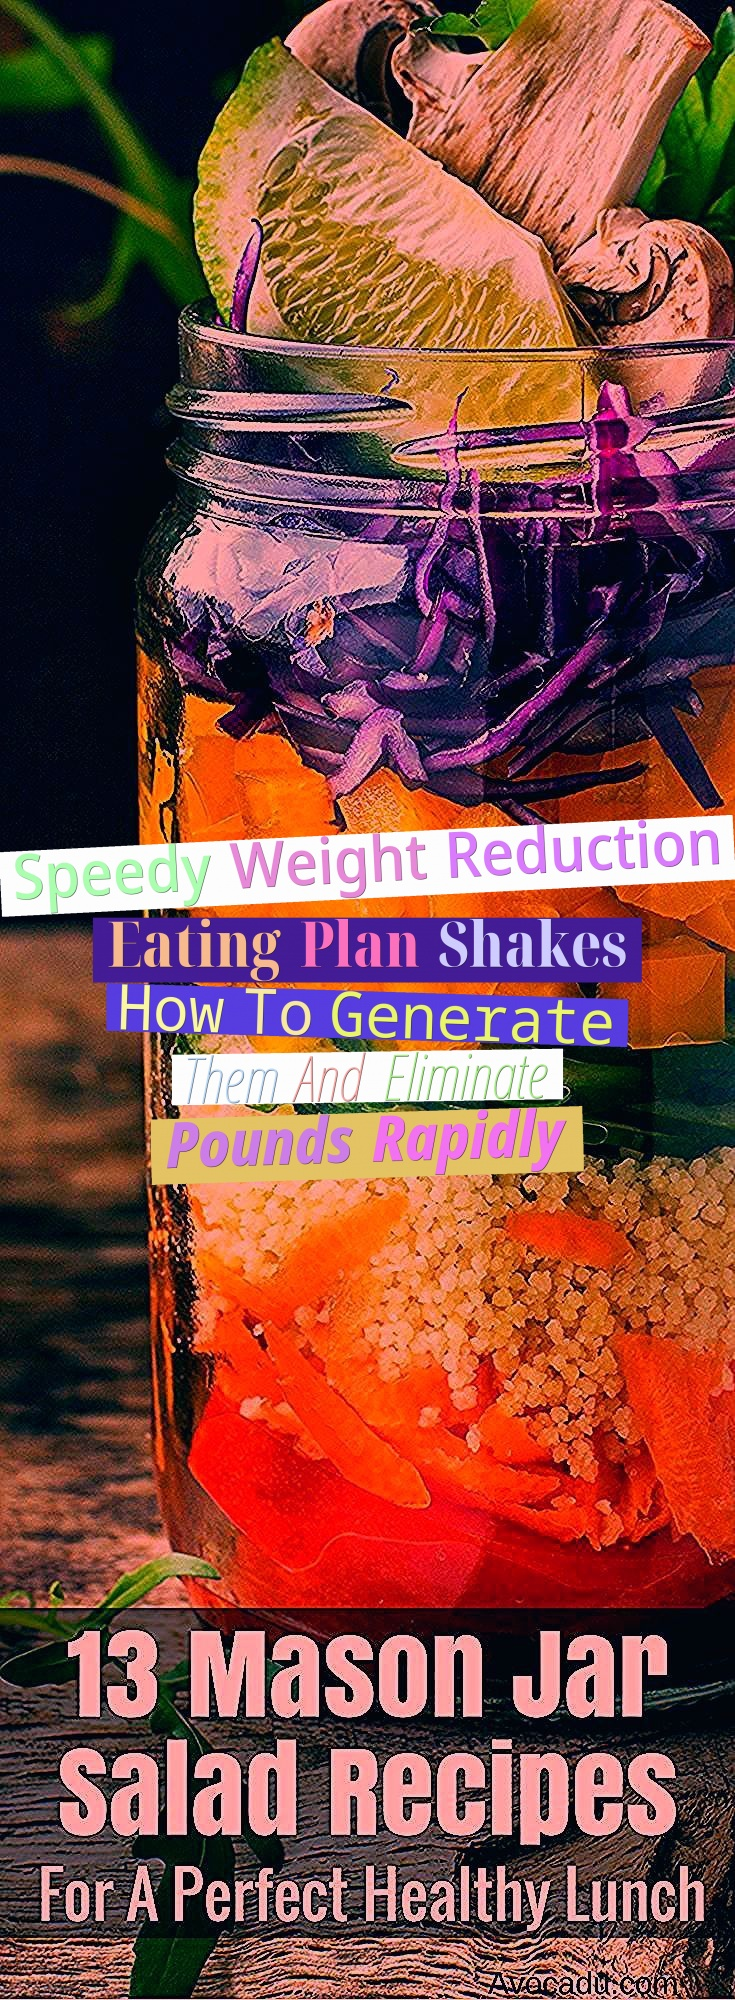 Speedy Weight Reduction Eating Plan Shakes - How To Generate Them And Eliminate Pounds Rapidly